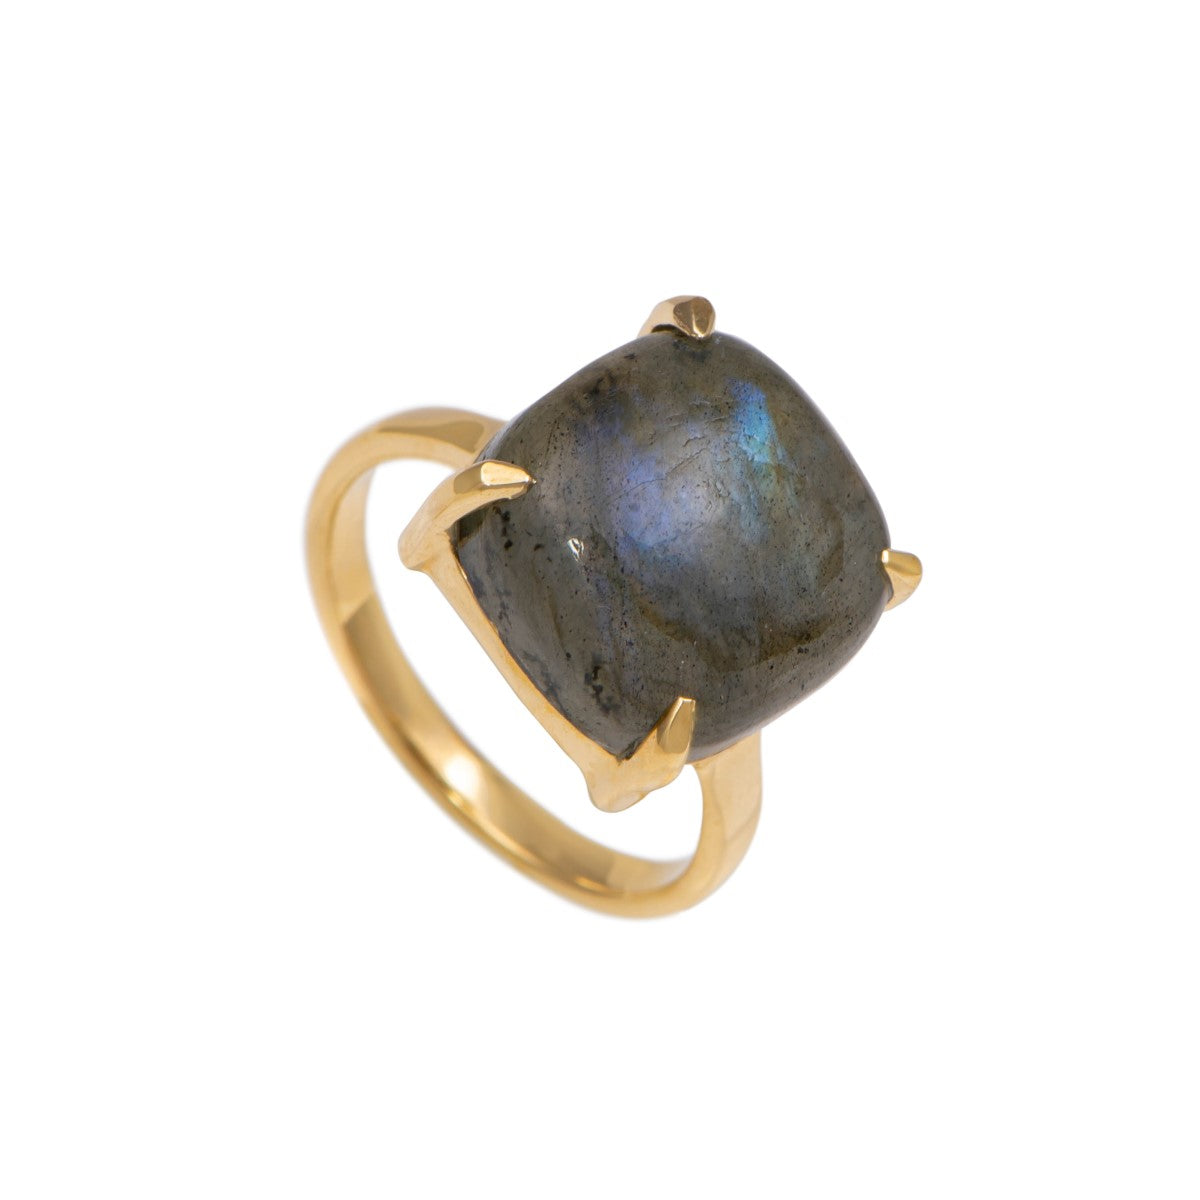 Square Cabochon Labradorite Ring in Gold Plated Sterling Silver